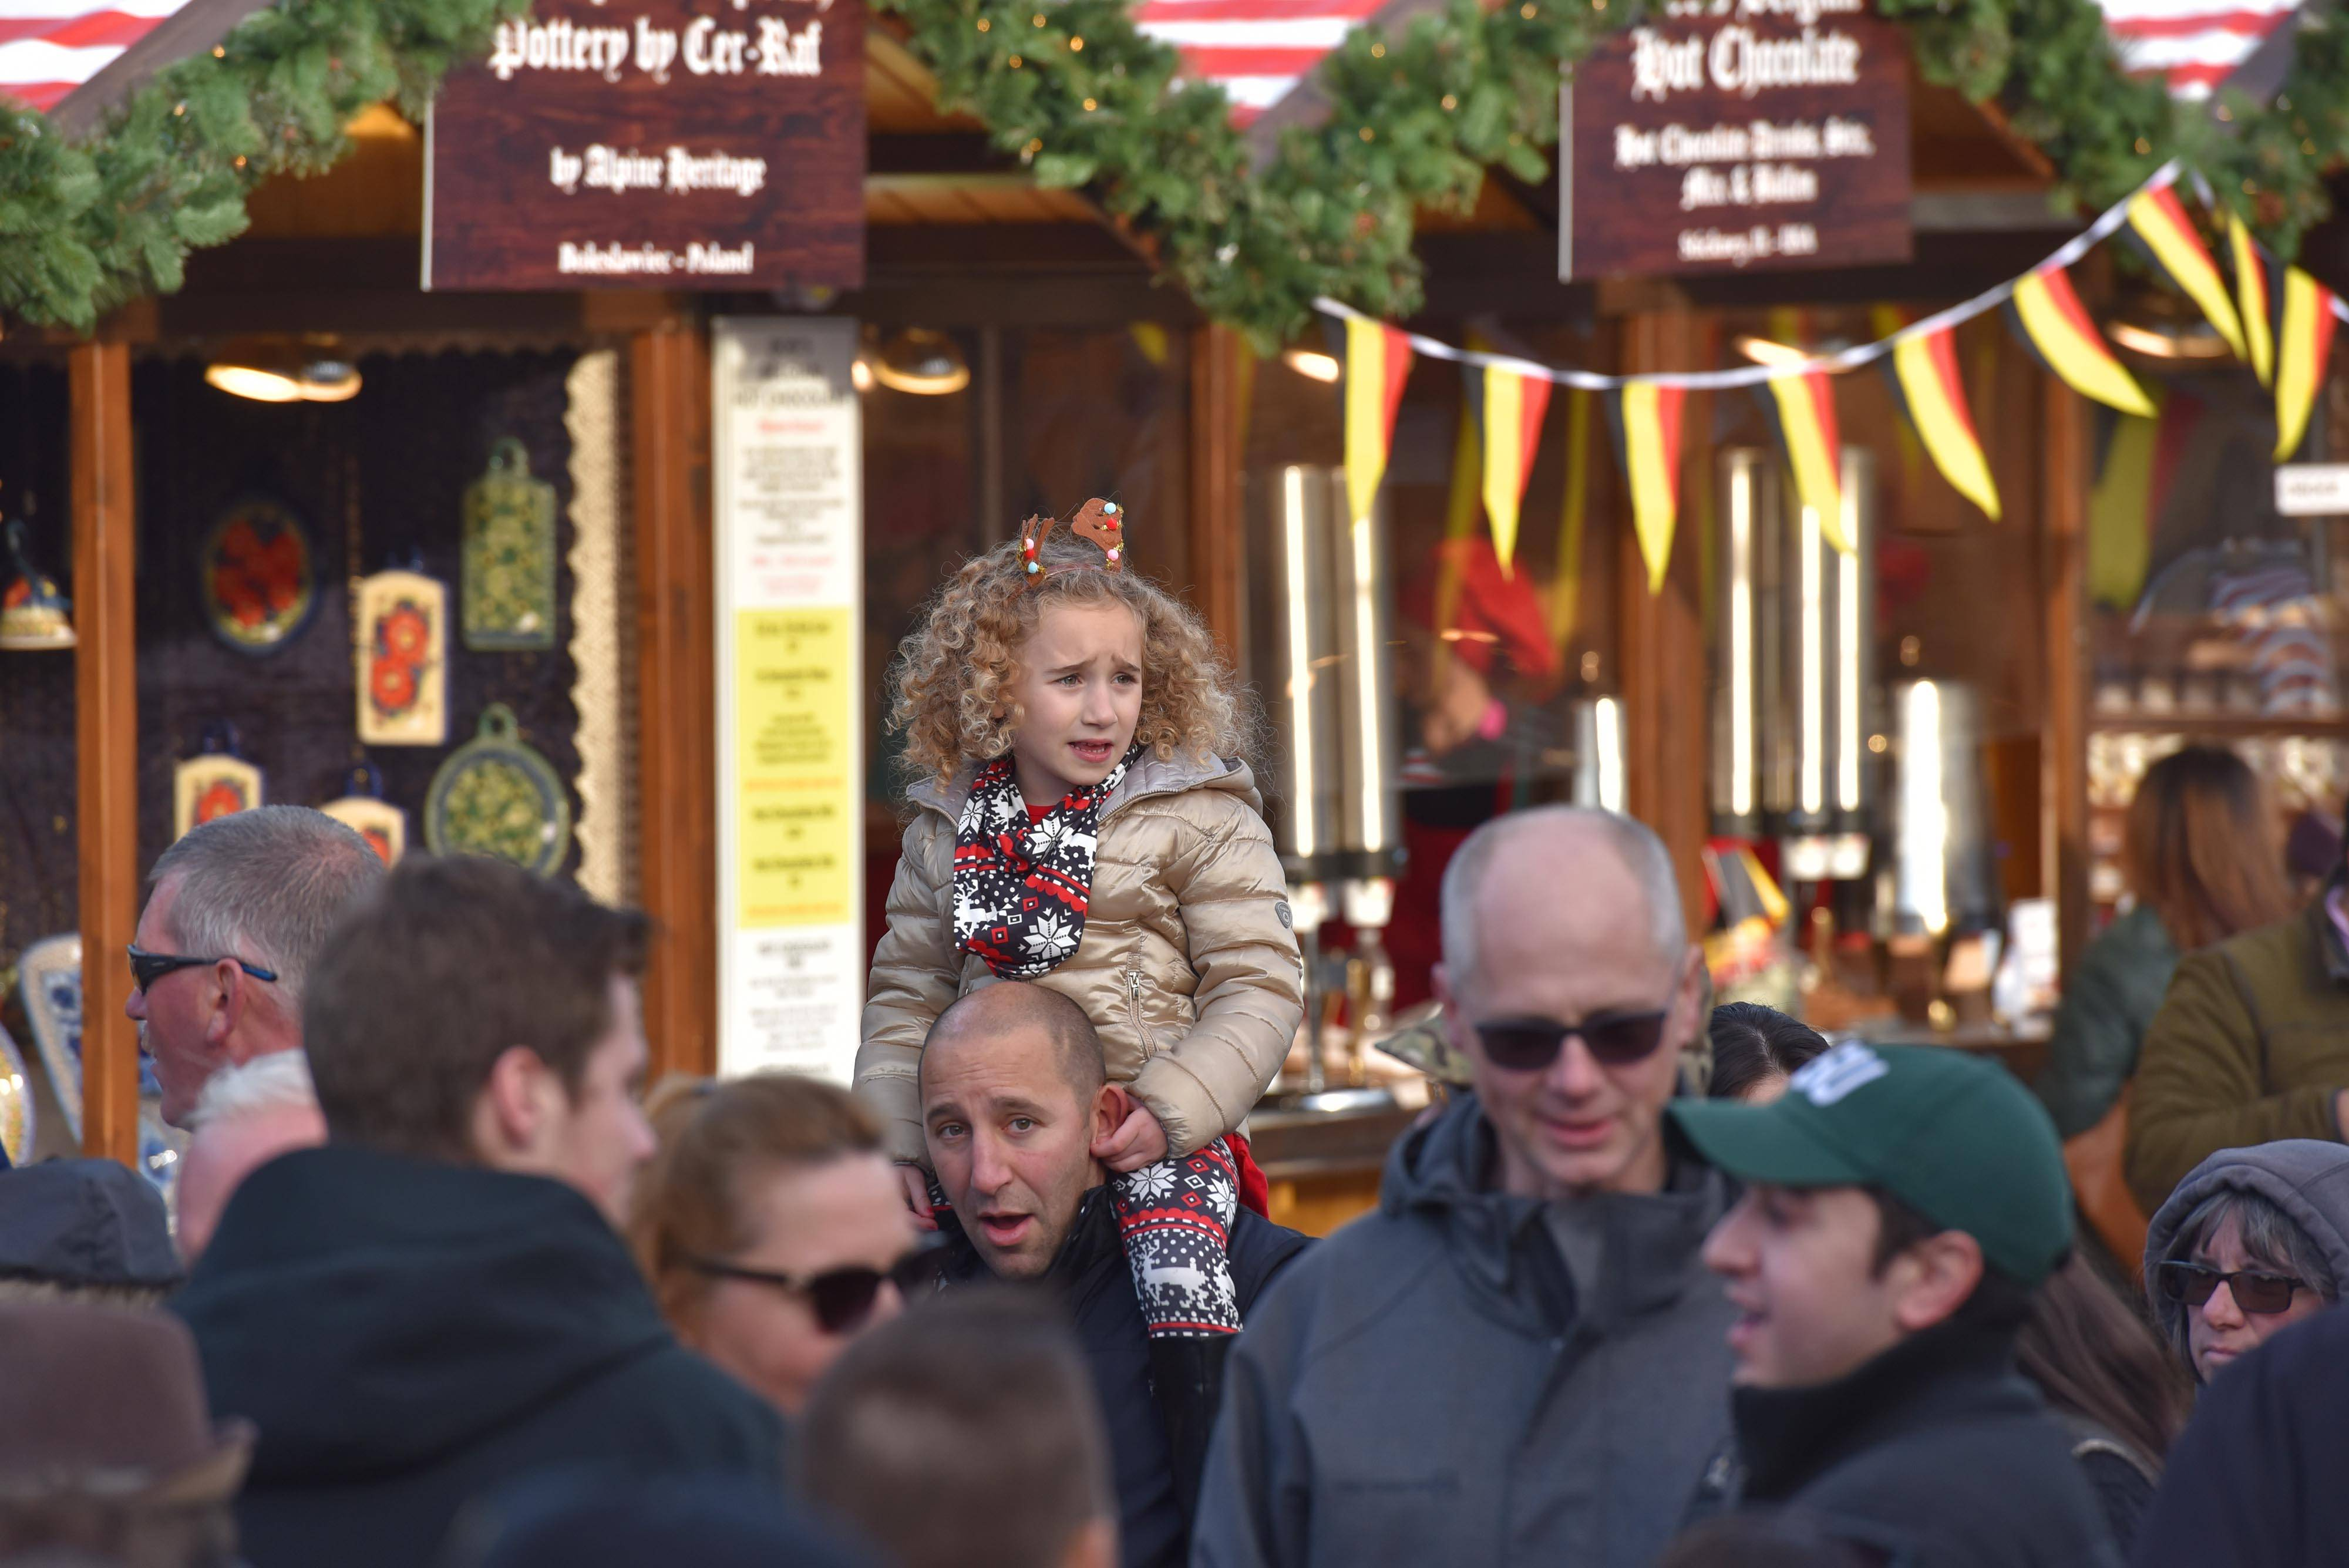 A young girl gets a better view of all the holiday happenings Sunday at the Naper Settlement's Christkindlmarket in Naperville. The market will be open Monday through Friday and again on Christmas Eve.